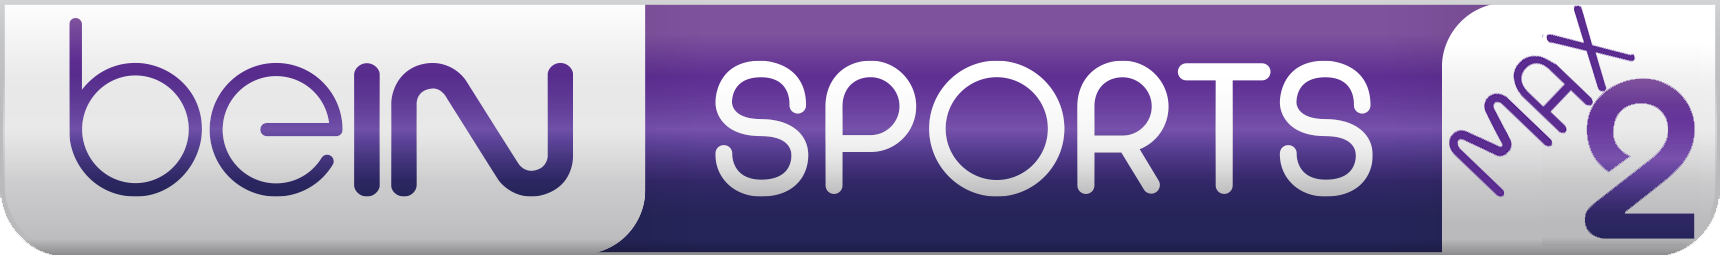 Bein Sports Max 2 Bein Sports Sports Streaming